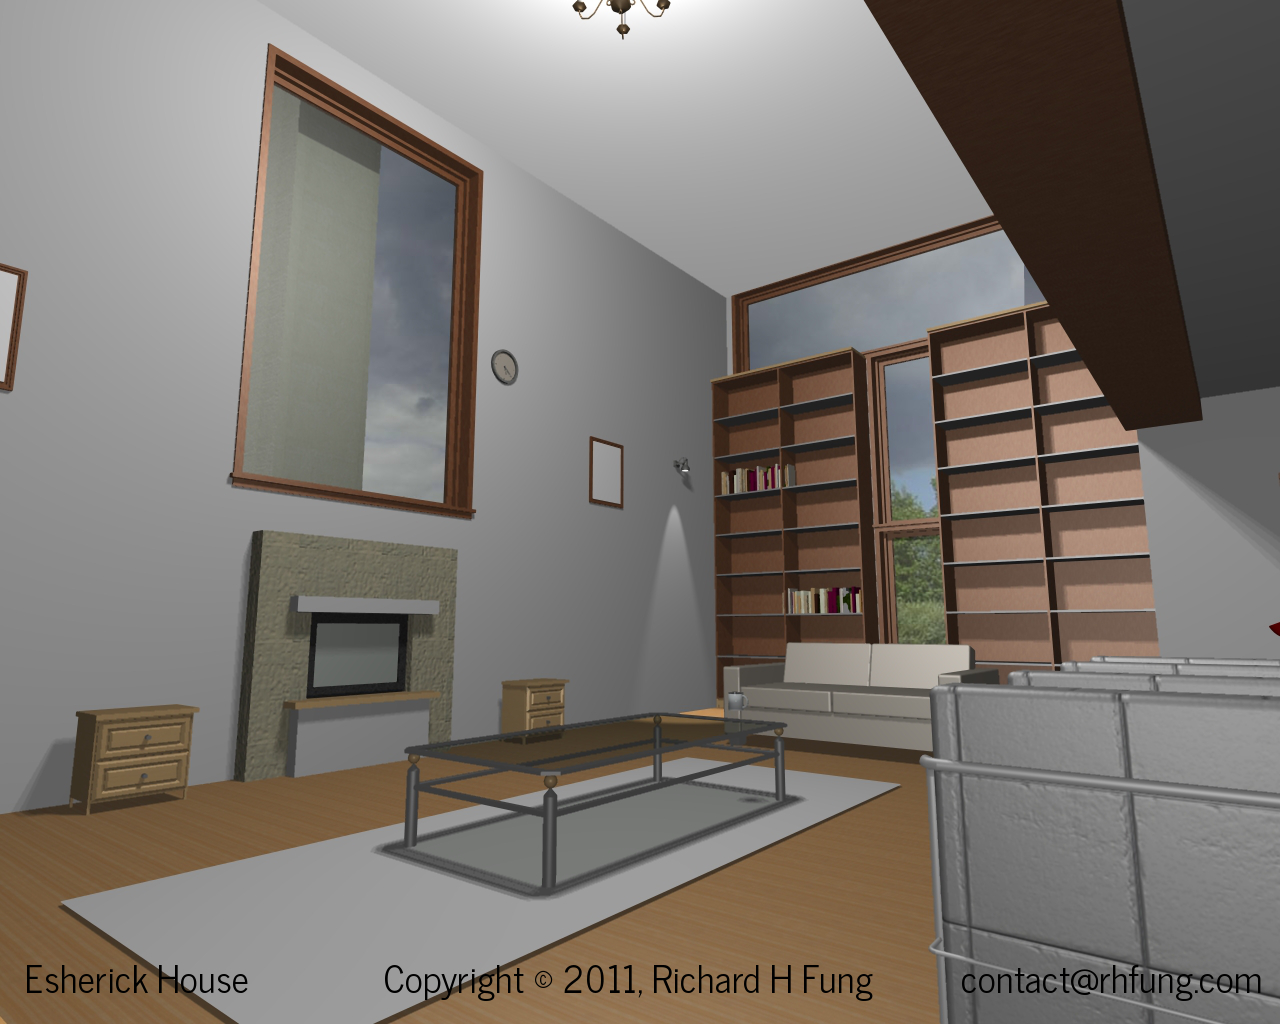 3D rendering of the Esherick House living room